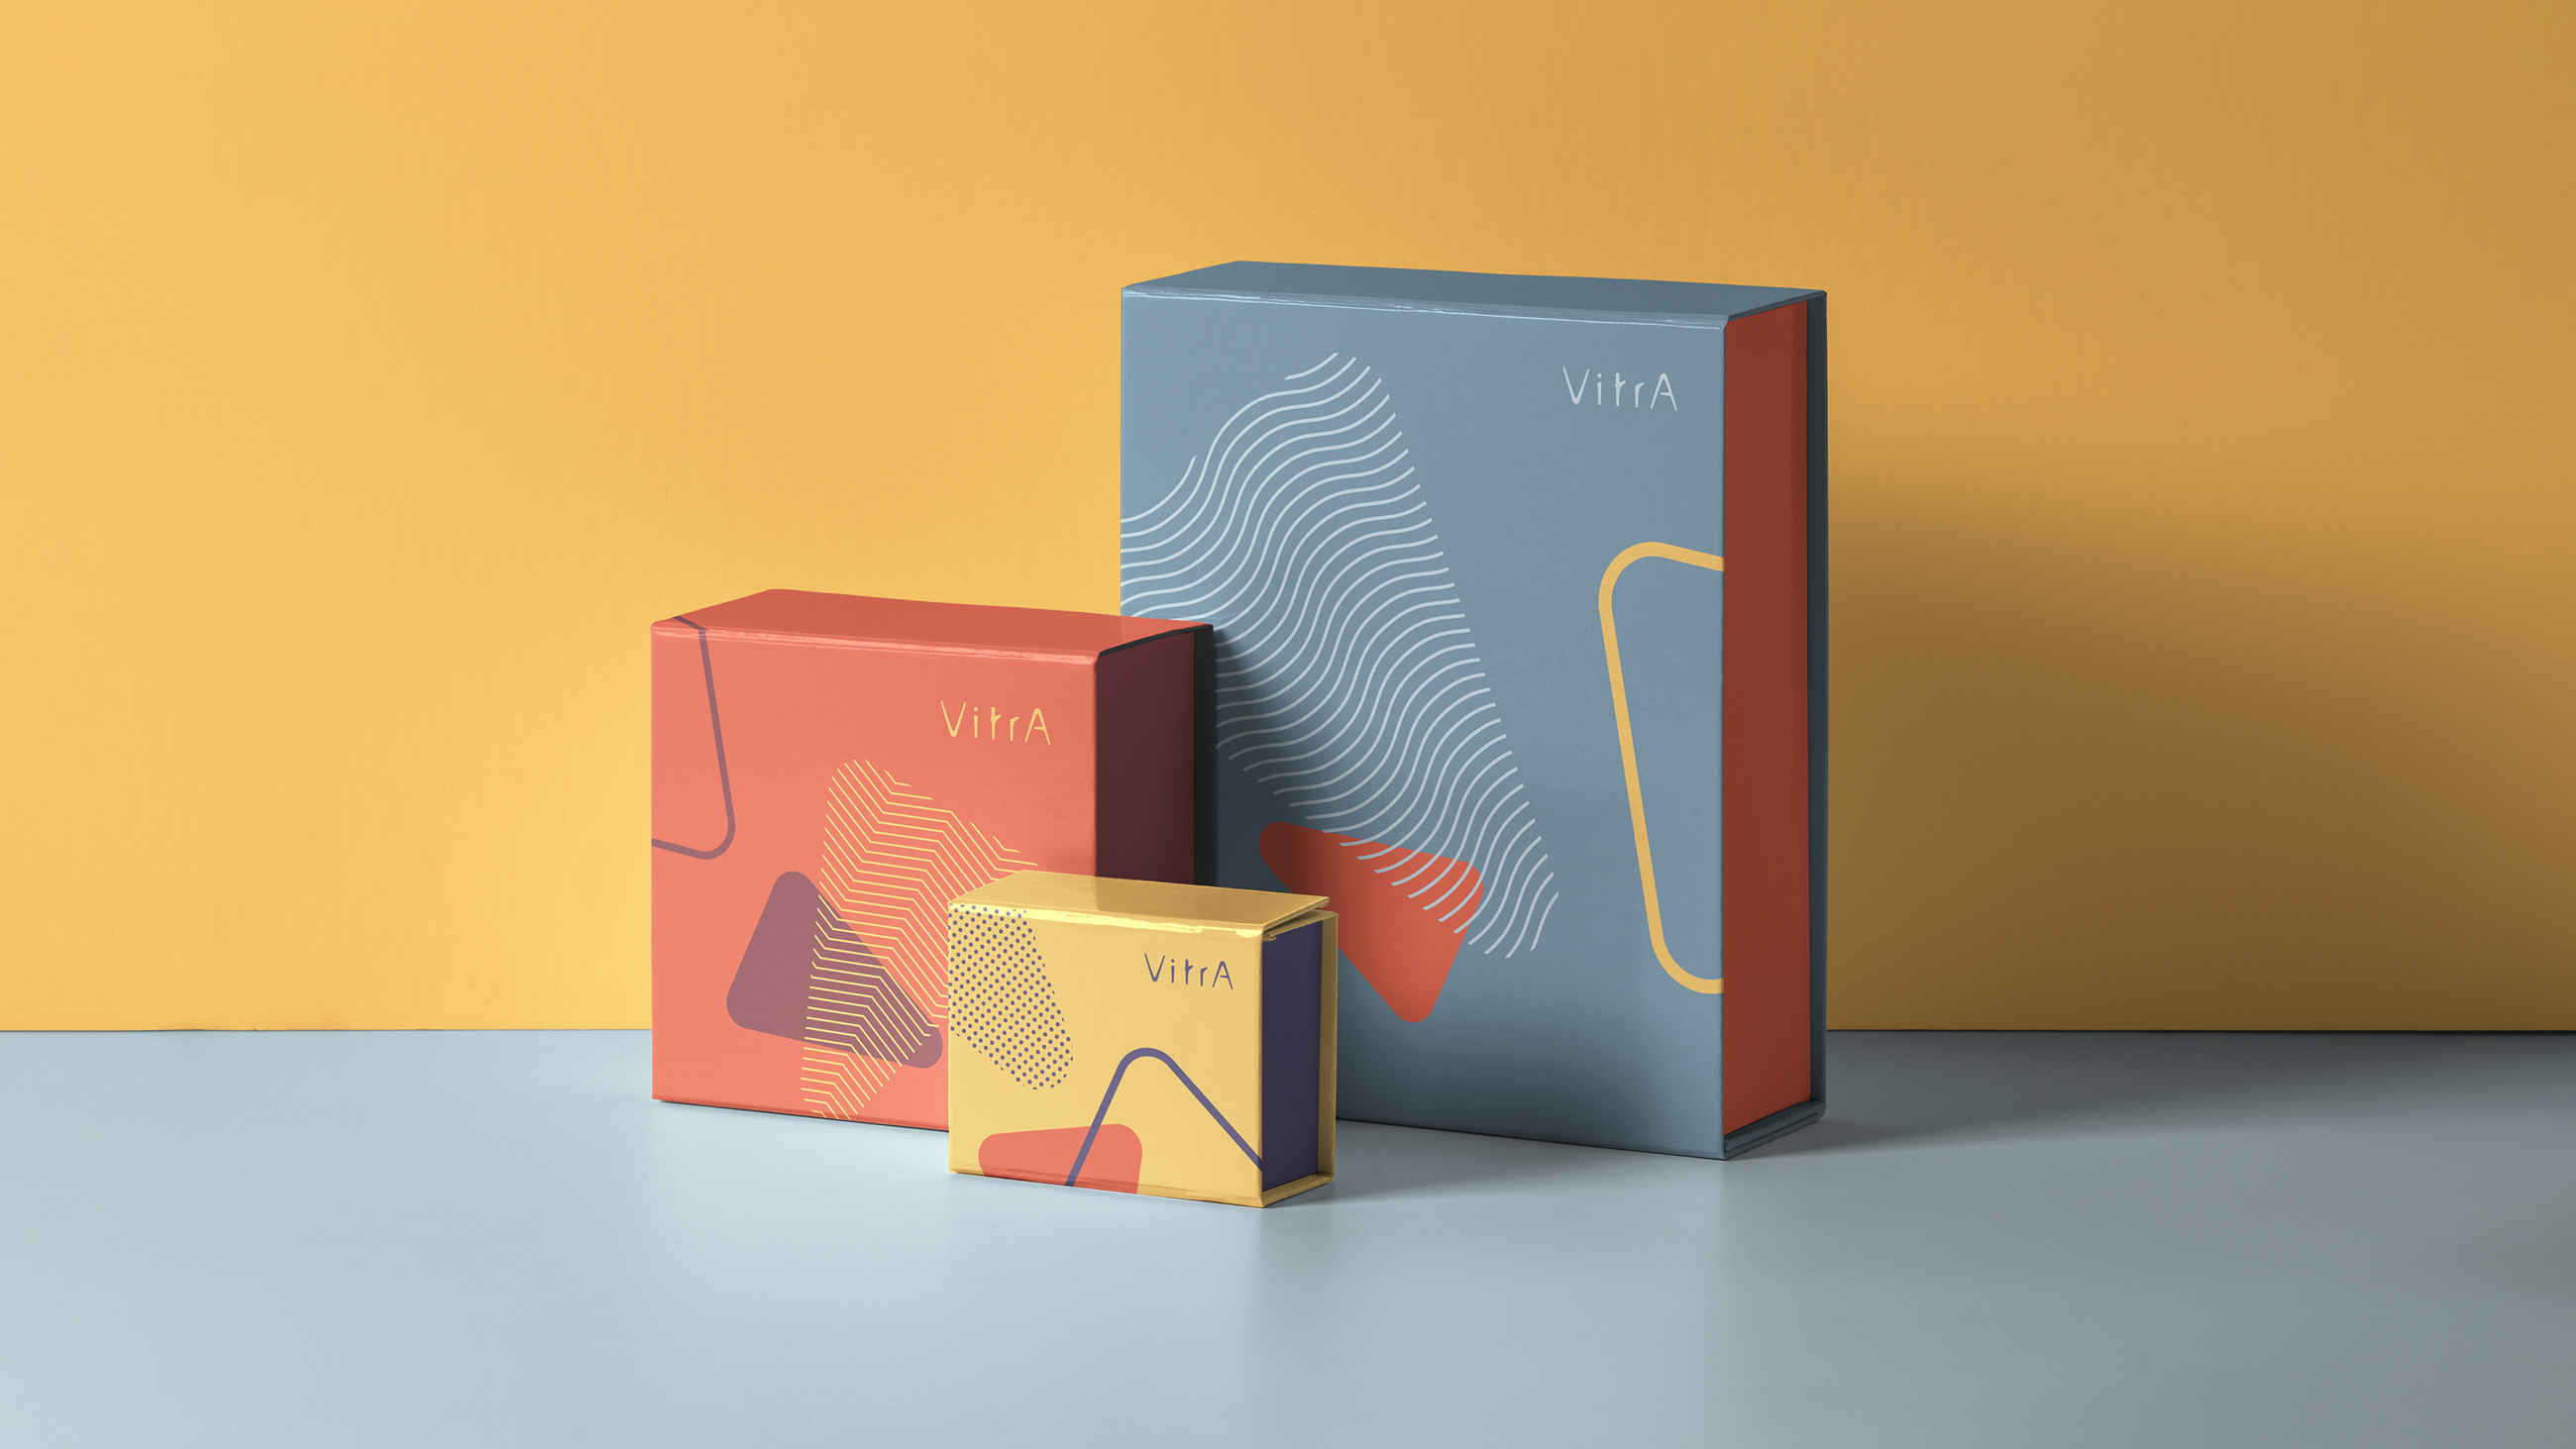 VitrA Visual Identity Design